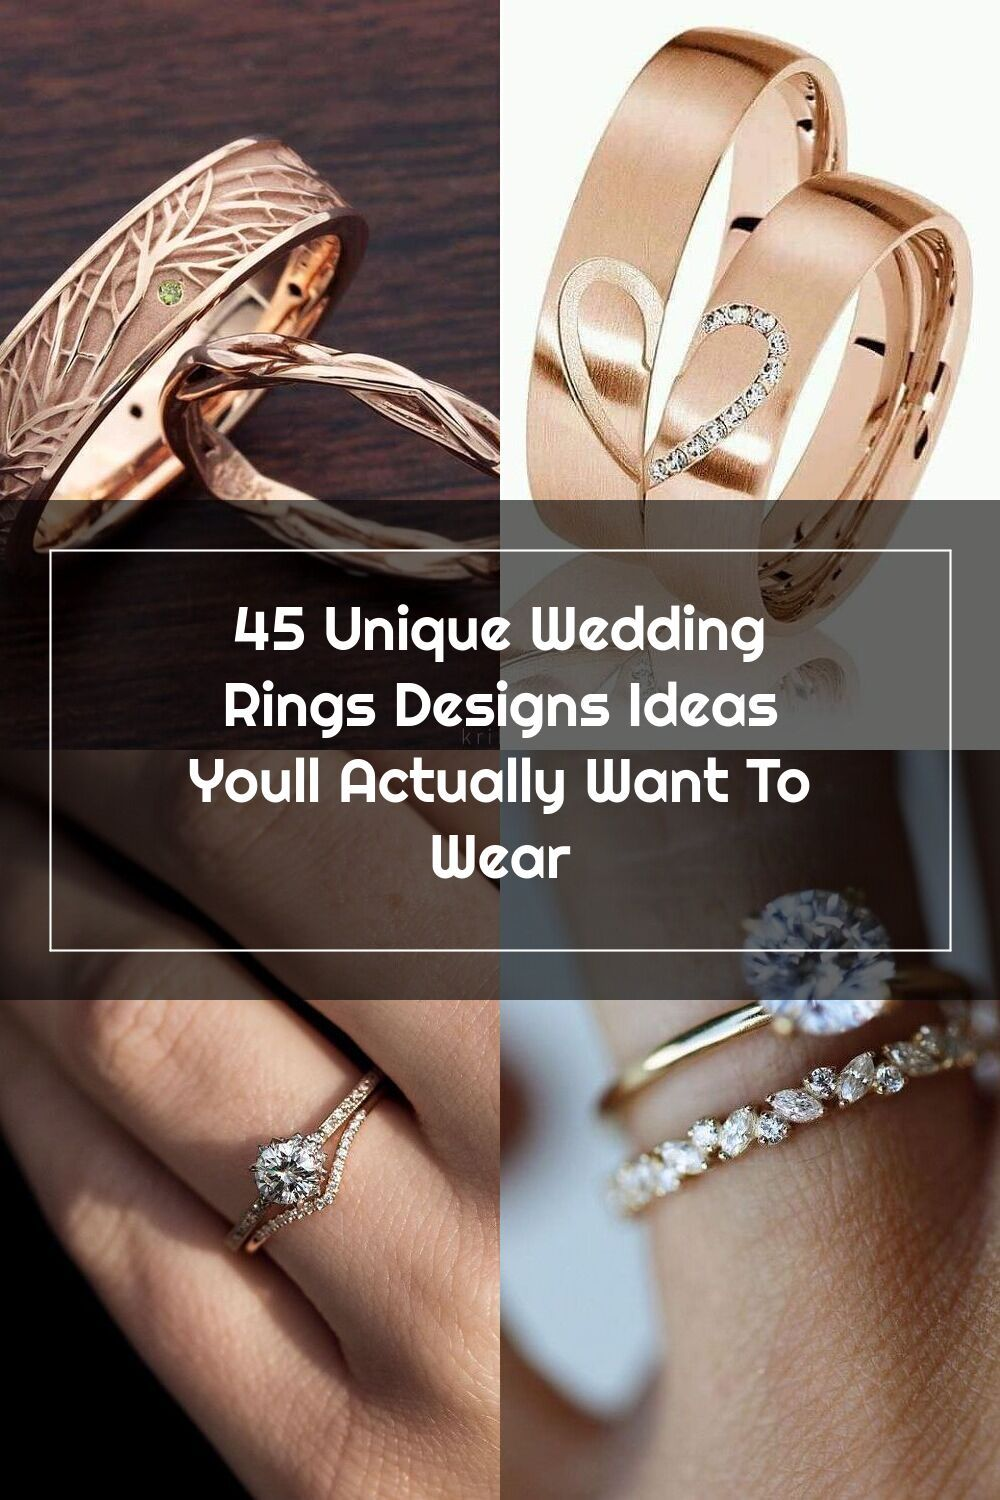 45 Unique Wedding Rings Designs Ideas Youll Actually Want To Wear In 2020 Wedding Rings Wedding Ring Designs Ring Designs